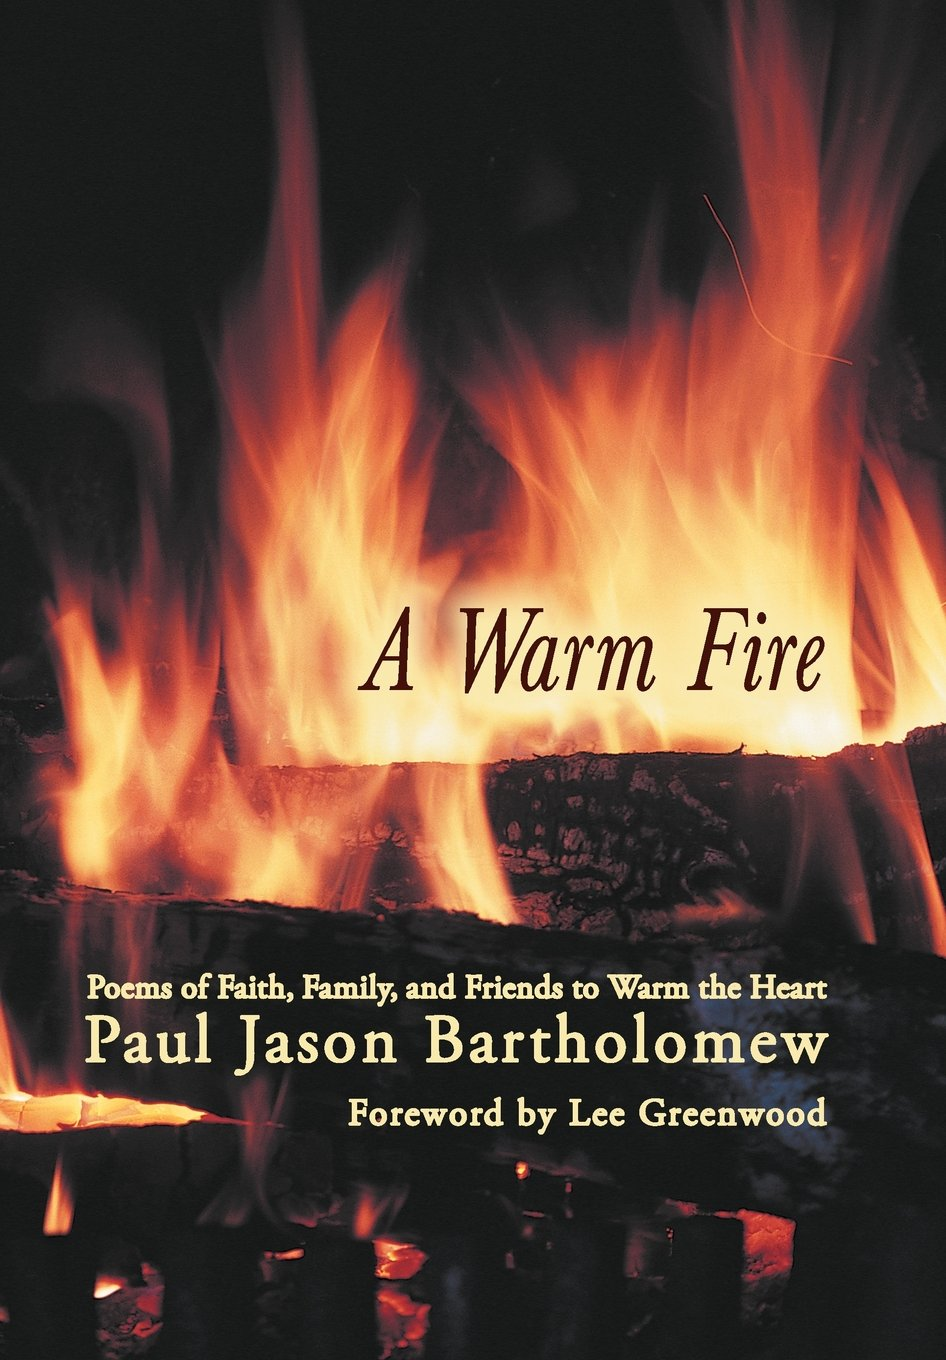 a warm fire poems of faith family and friends to warm the heart